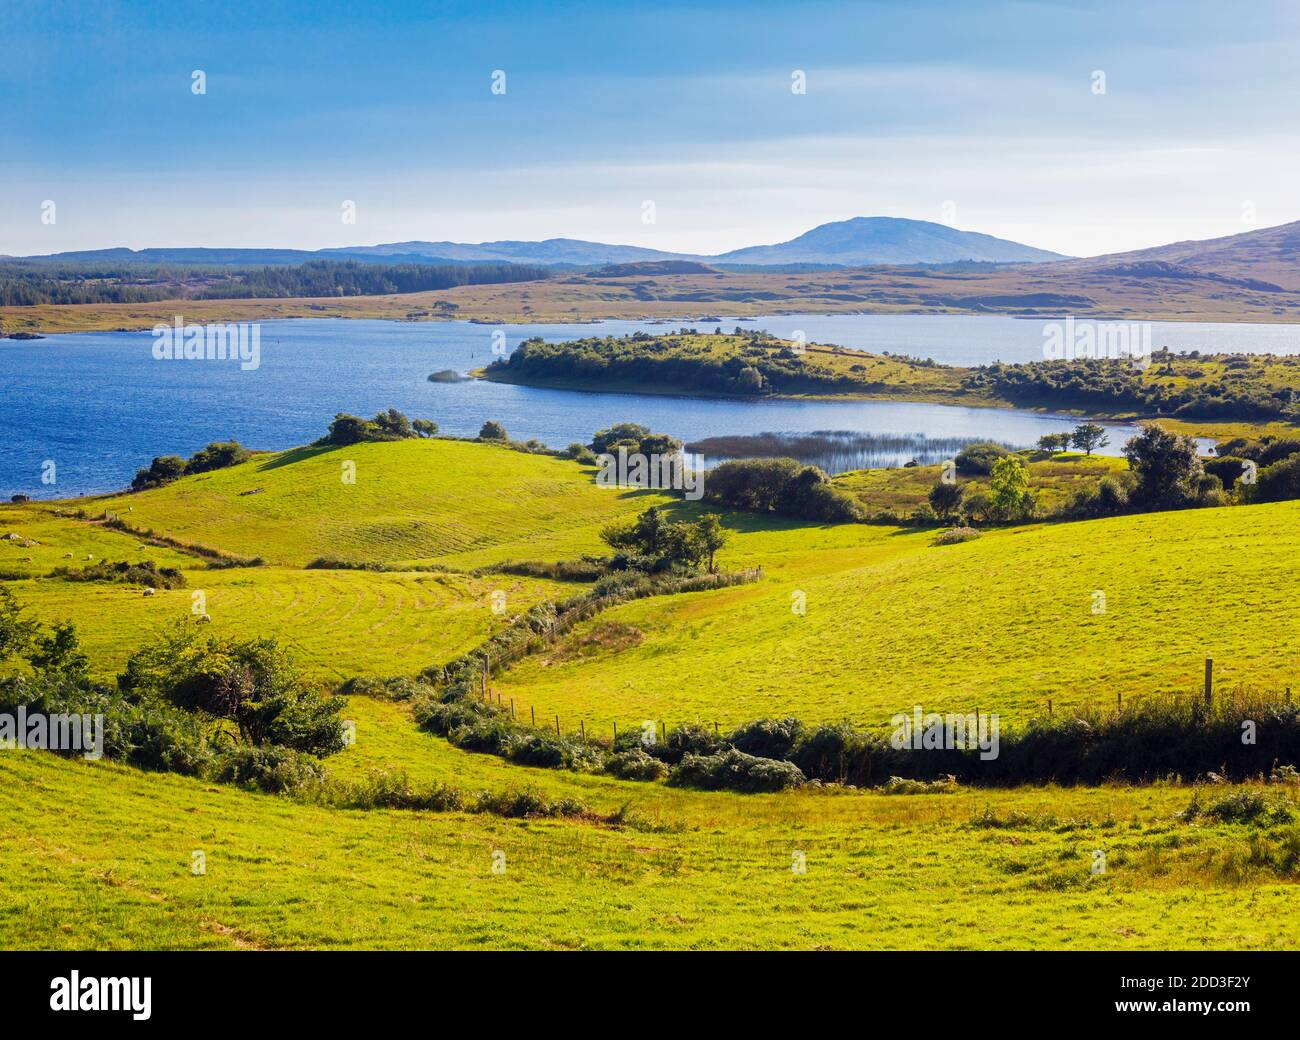 Countryside leading down to Lough Corrib, Connemara, County Galway, Republic of Ireland. Eire. Lough Corrib is the largest lake in the Irish Republic. Stock Photo